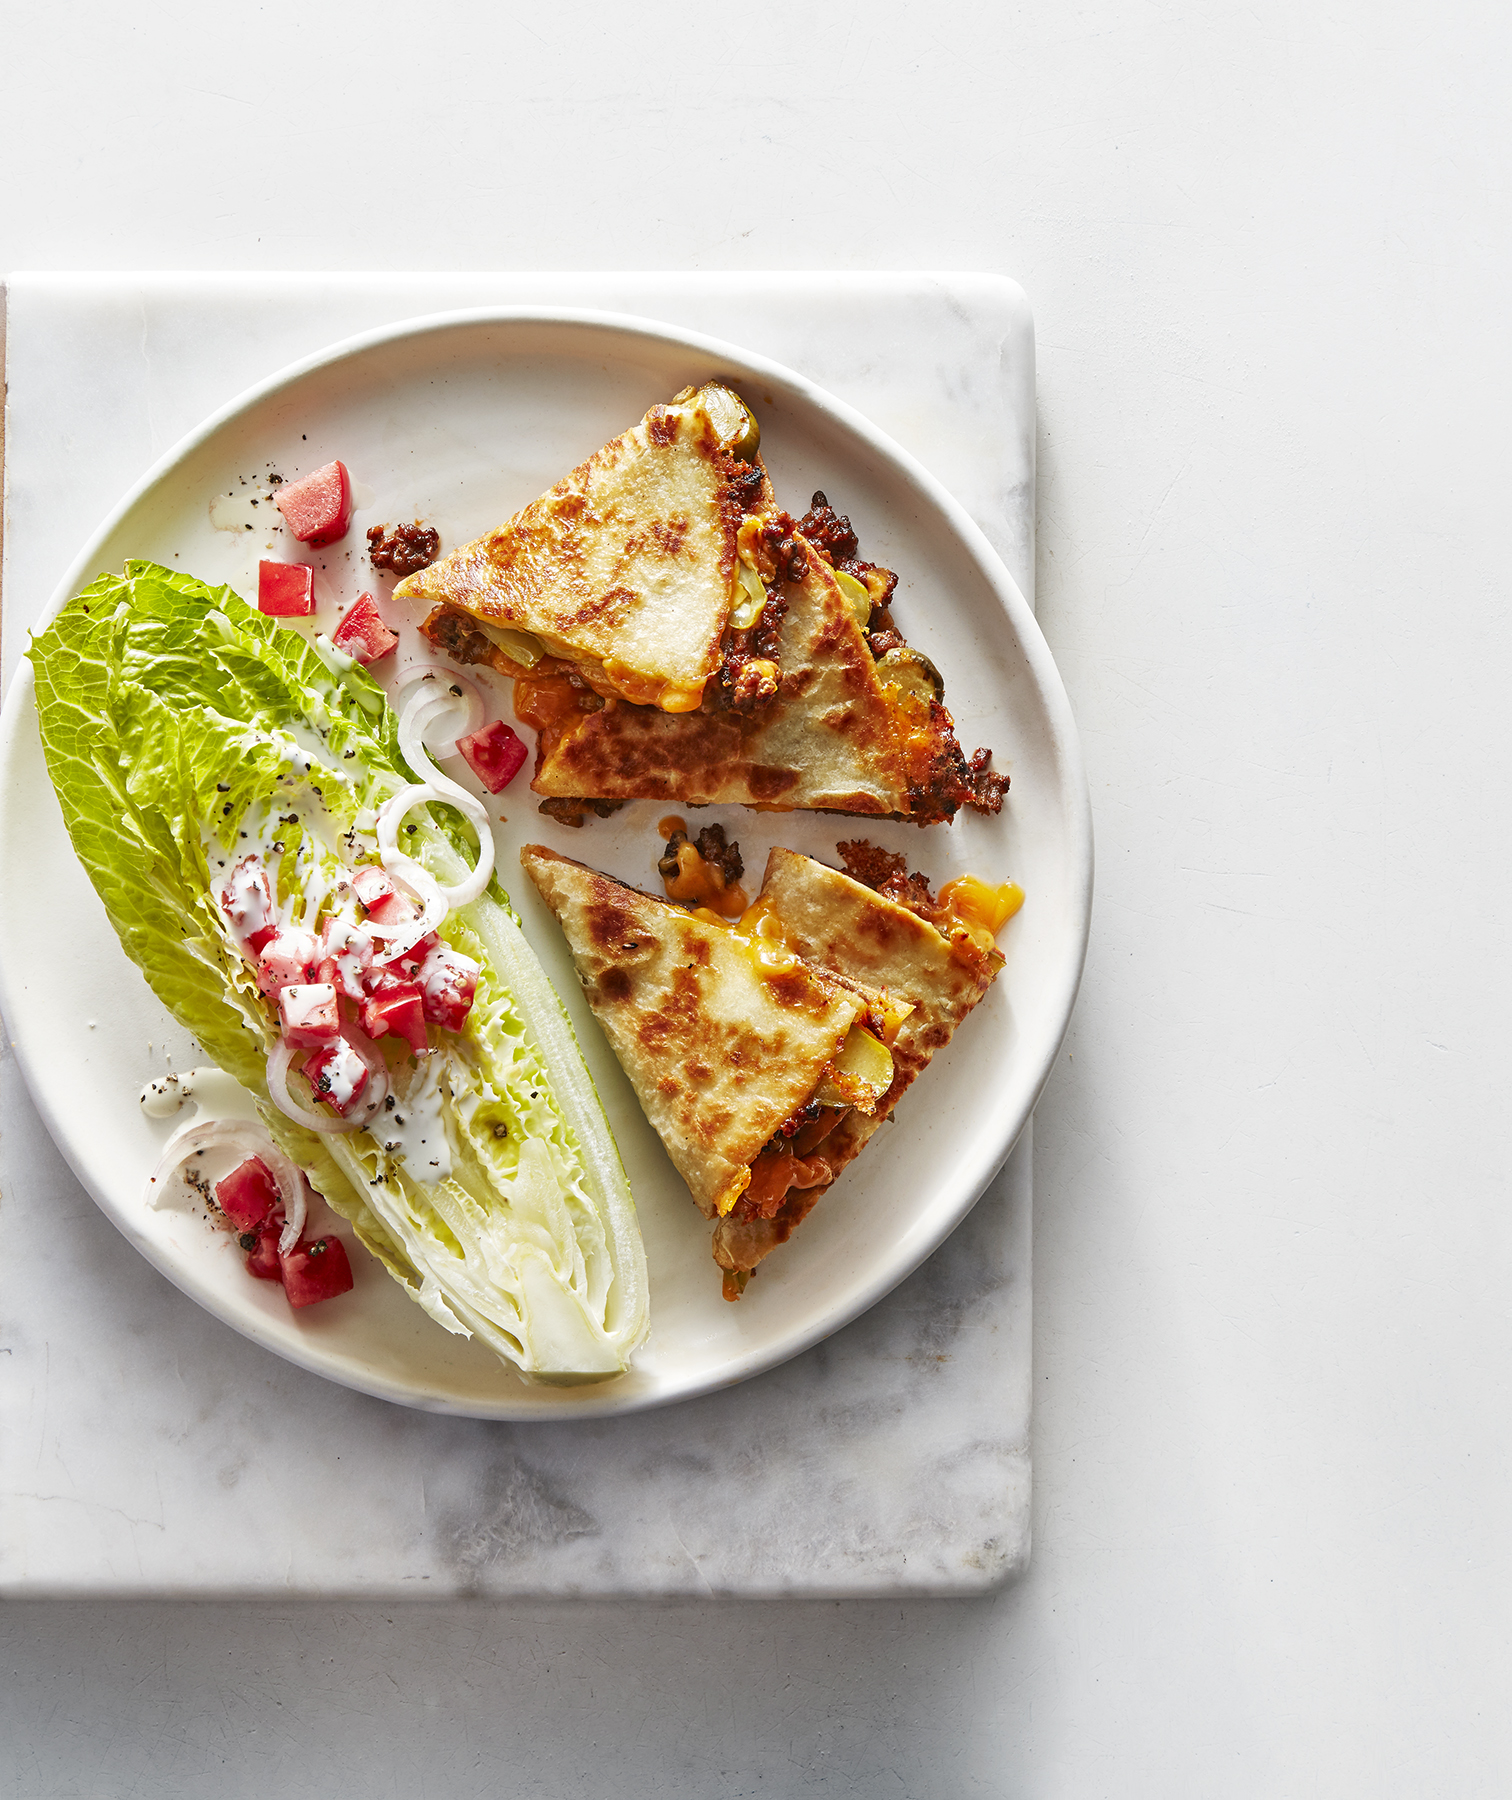 Cheeseburger Quesadillas With Romanie Wedge Salad